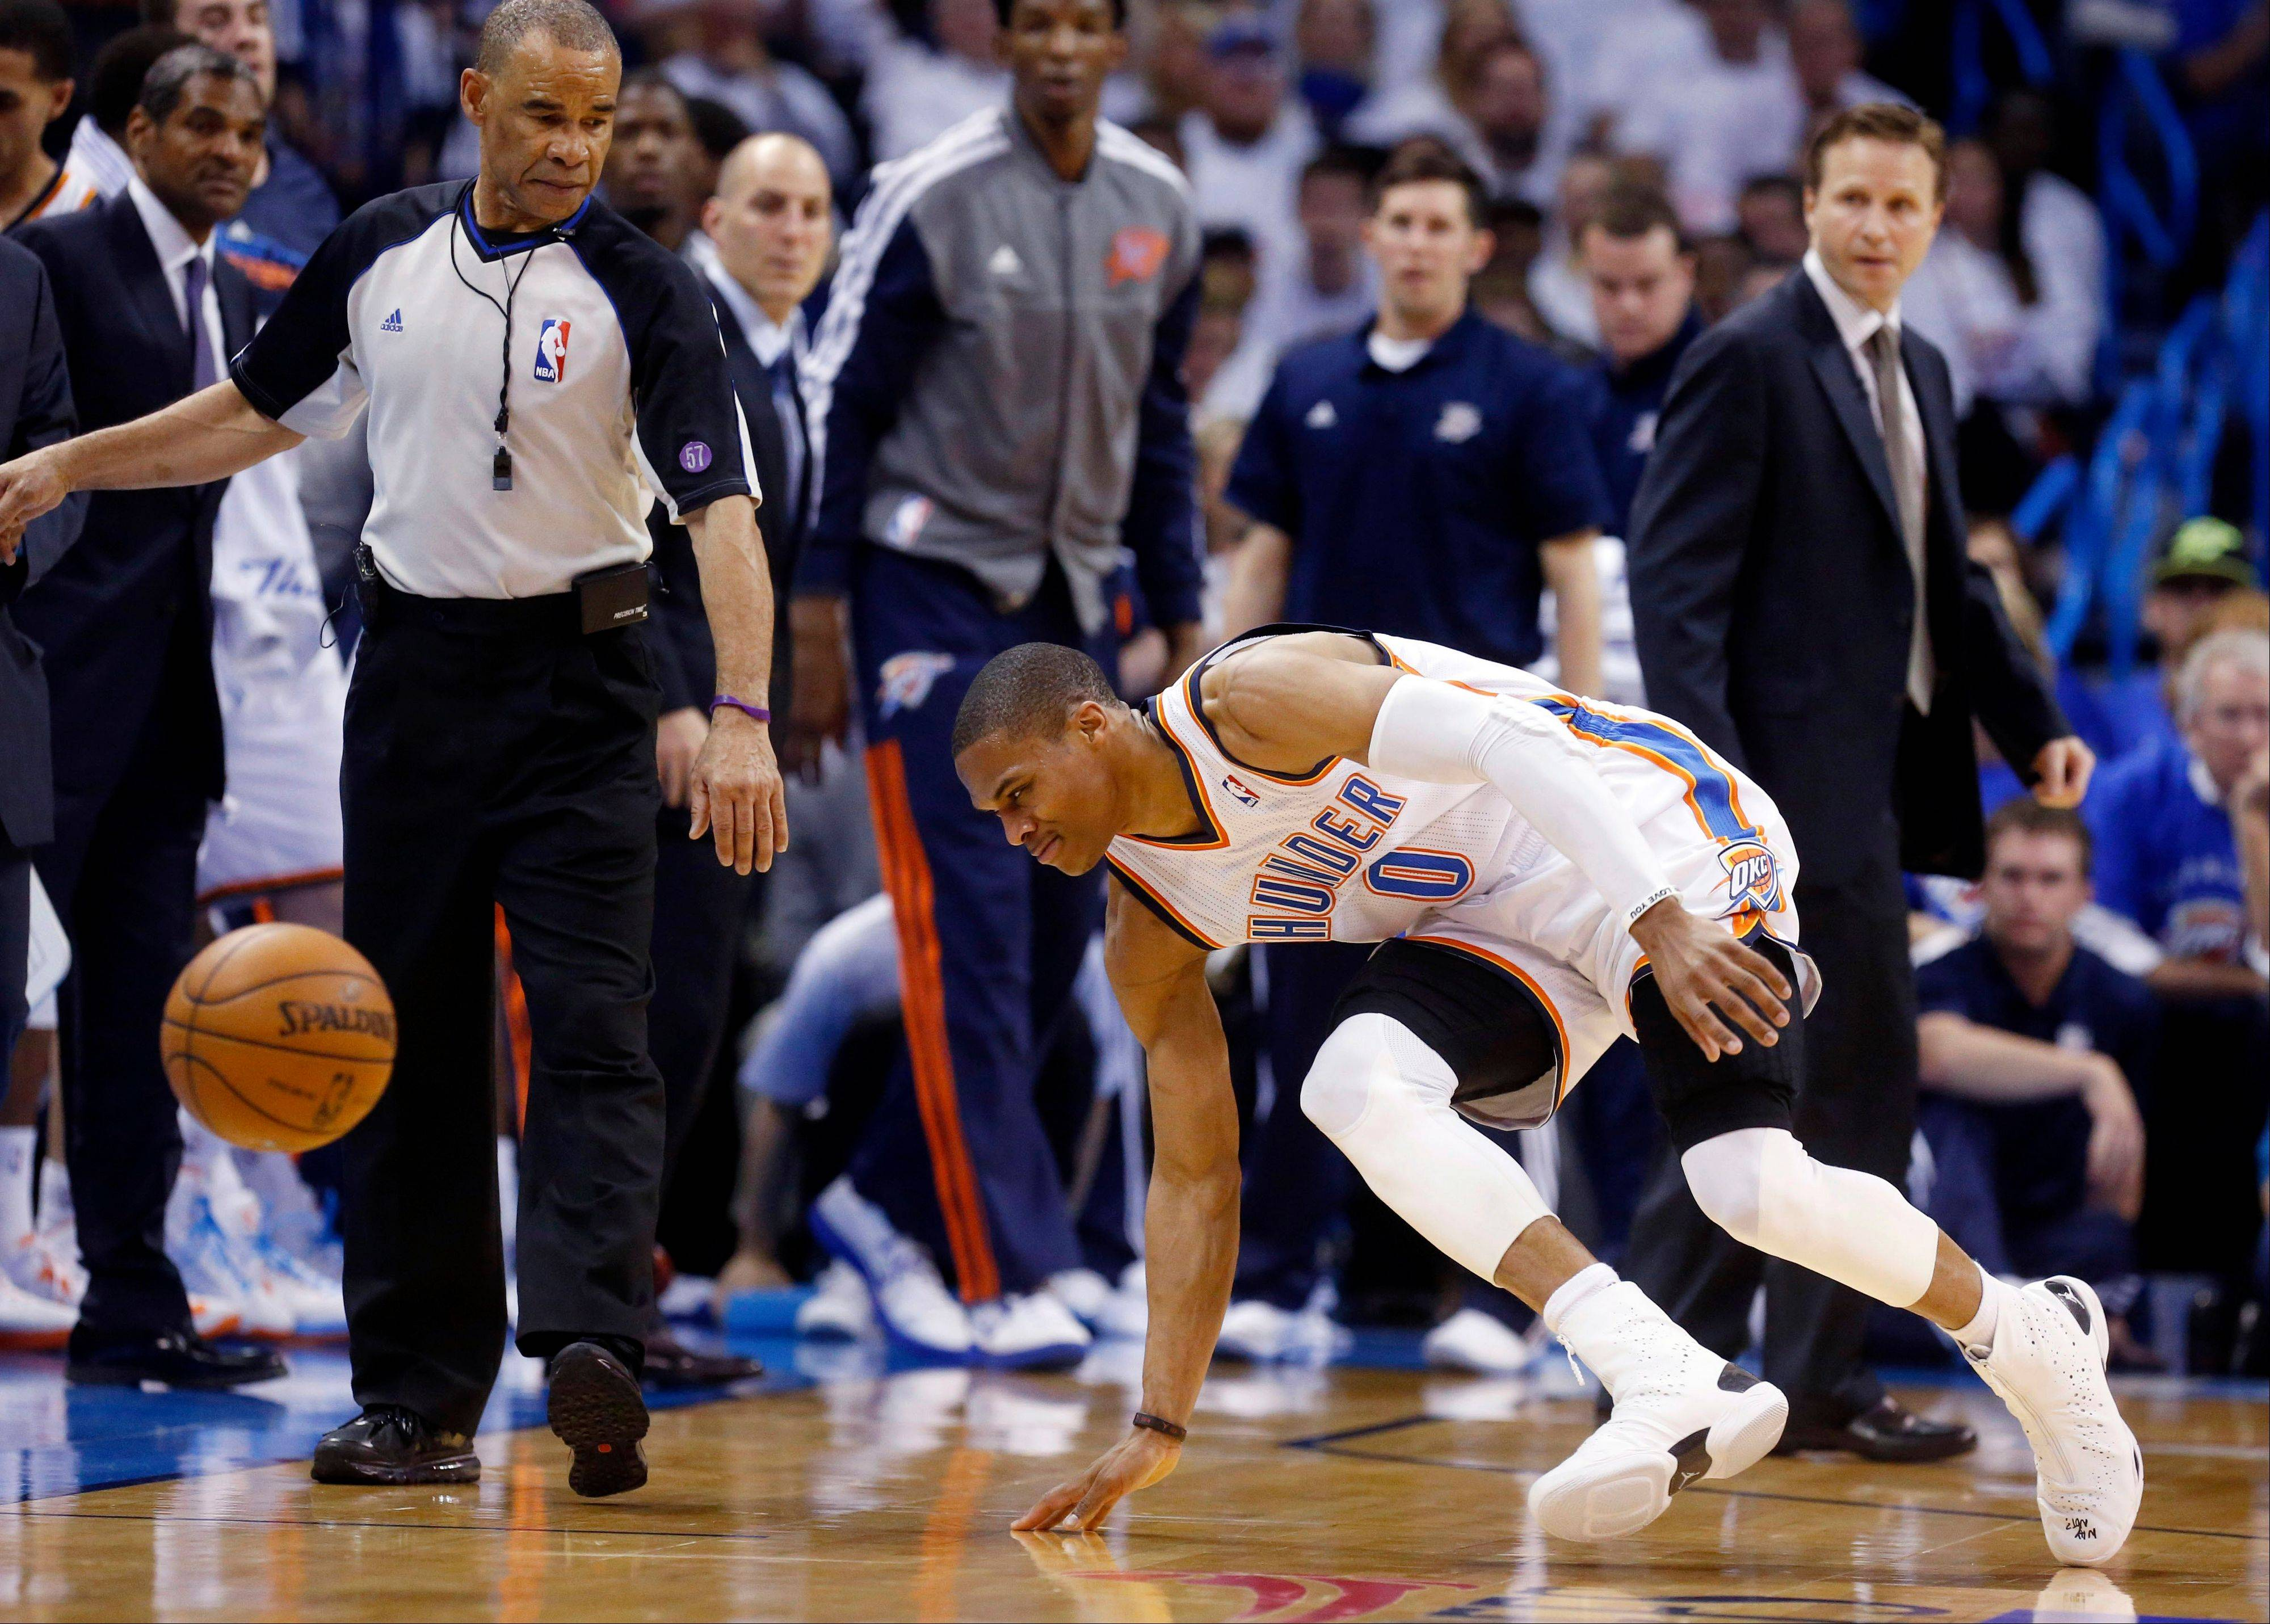 Oklahoma City Thunder guard Russell Westbrook stumbles after injuring his right knee Wednesday in Game 2 against the Houston Rockets. Westbrook will have surgery to repair a torn meniscus in his right knee and be out indefinitely.